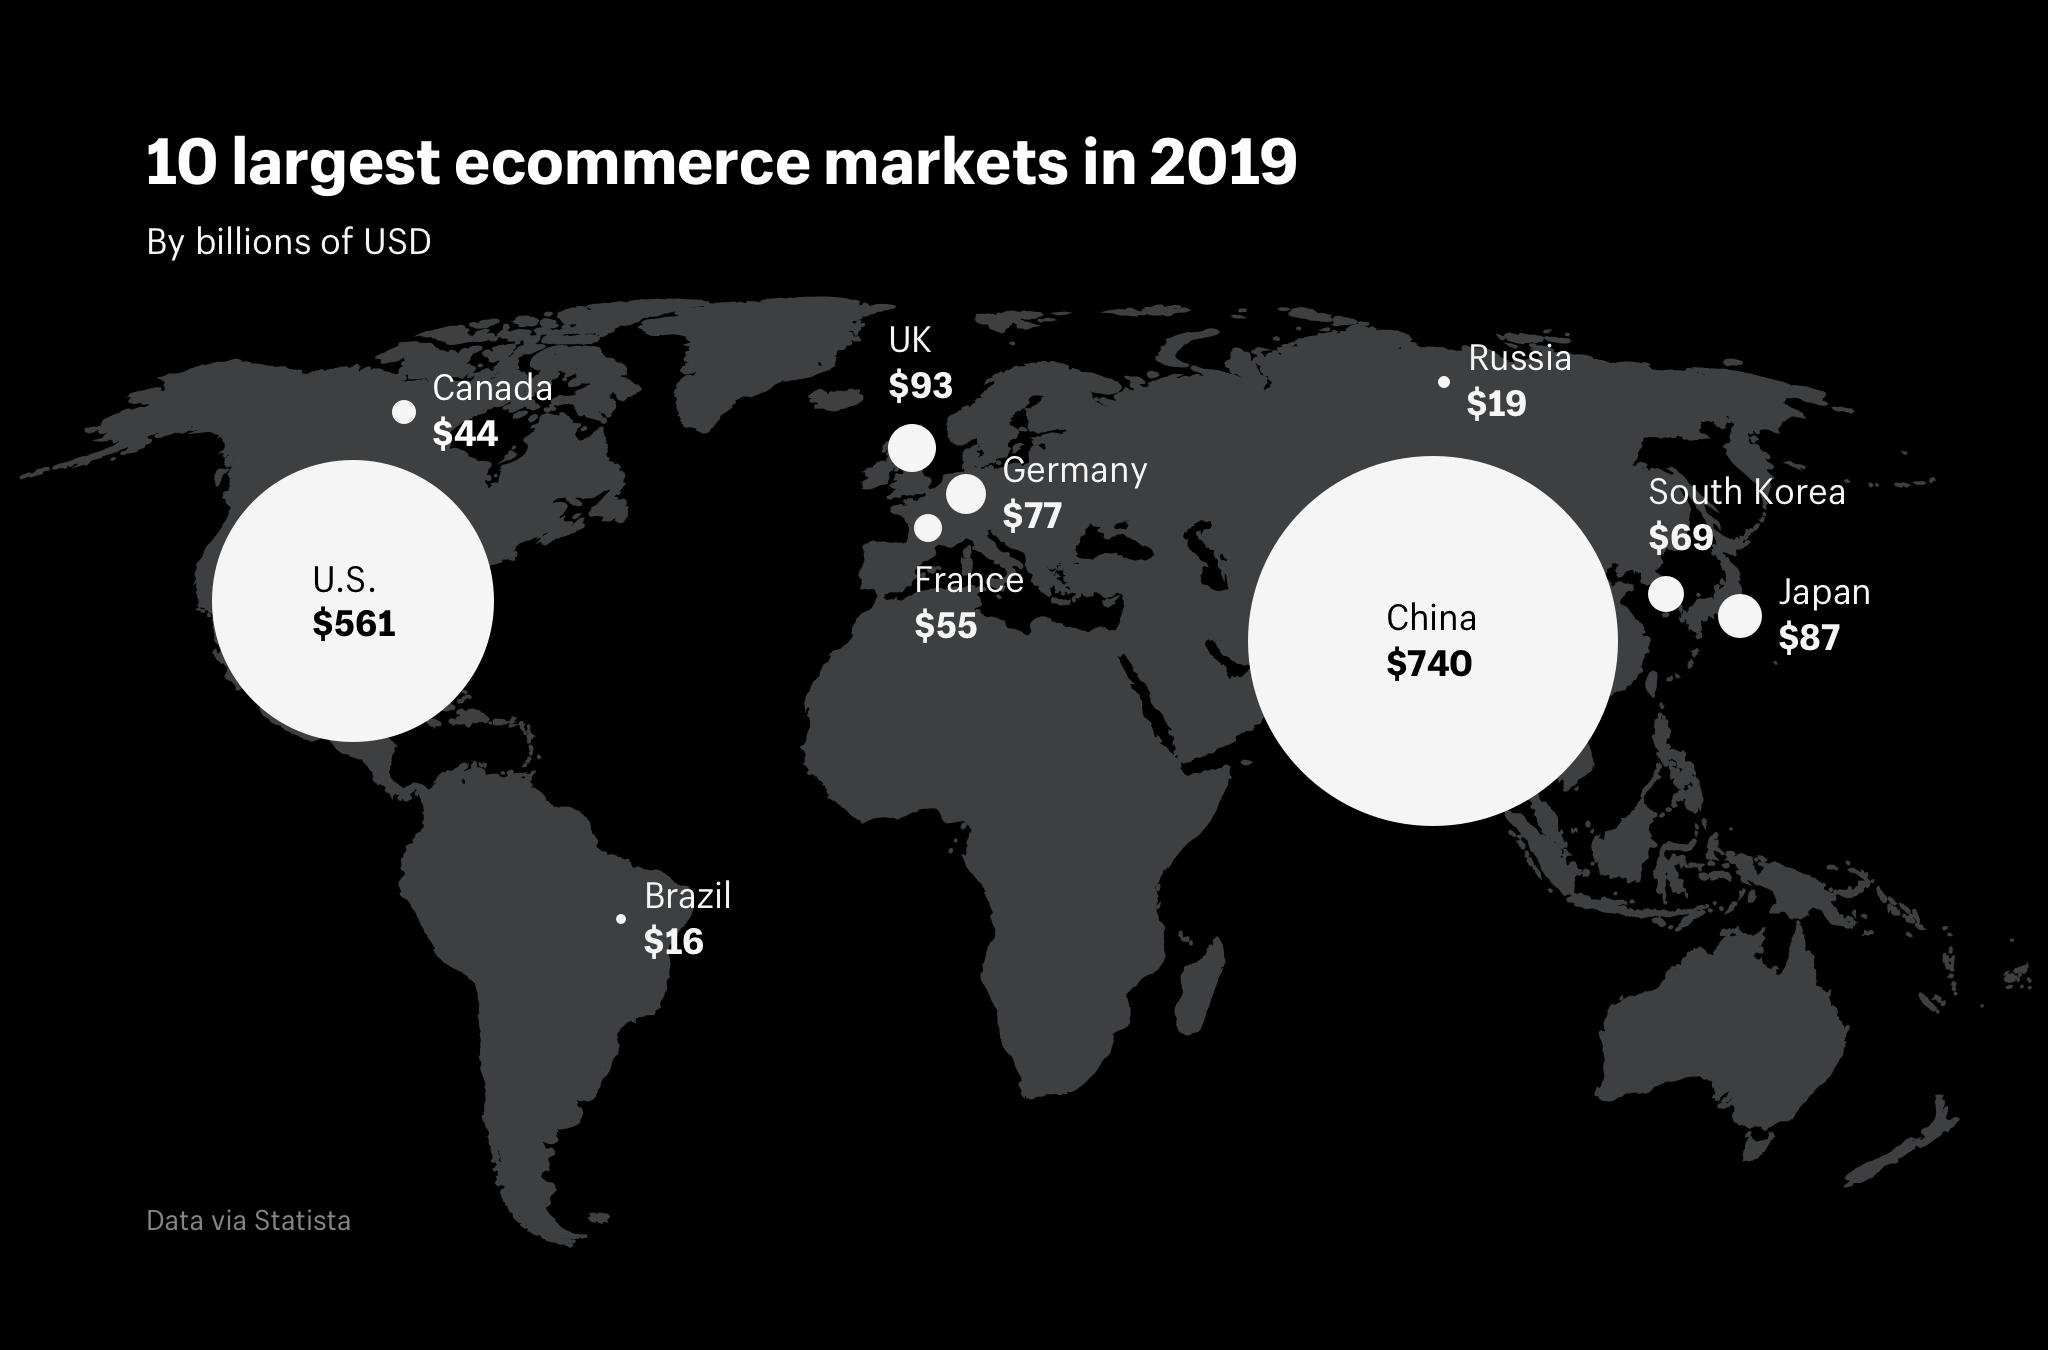 10 largest ecommerce markets worldwide